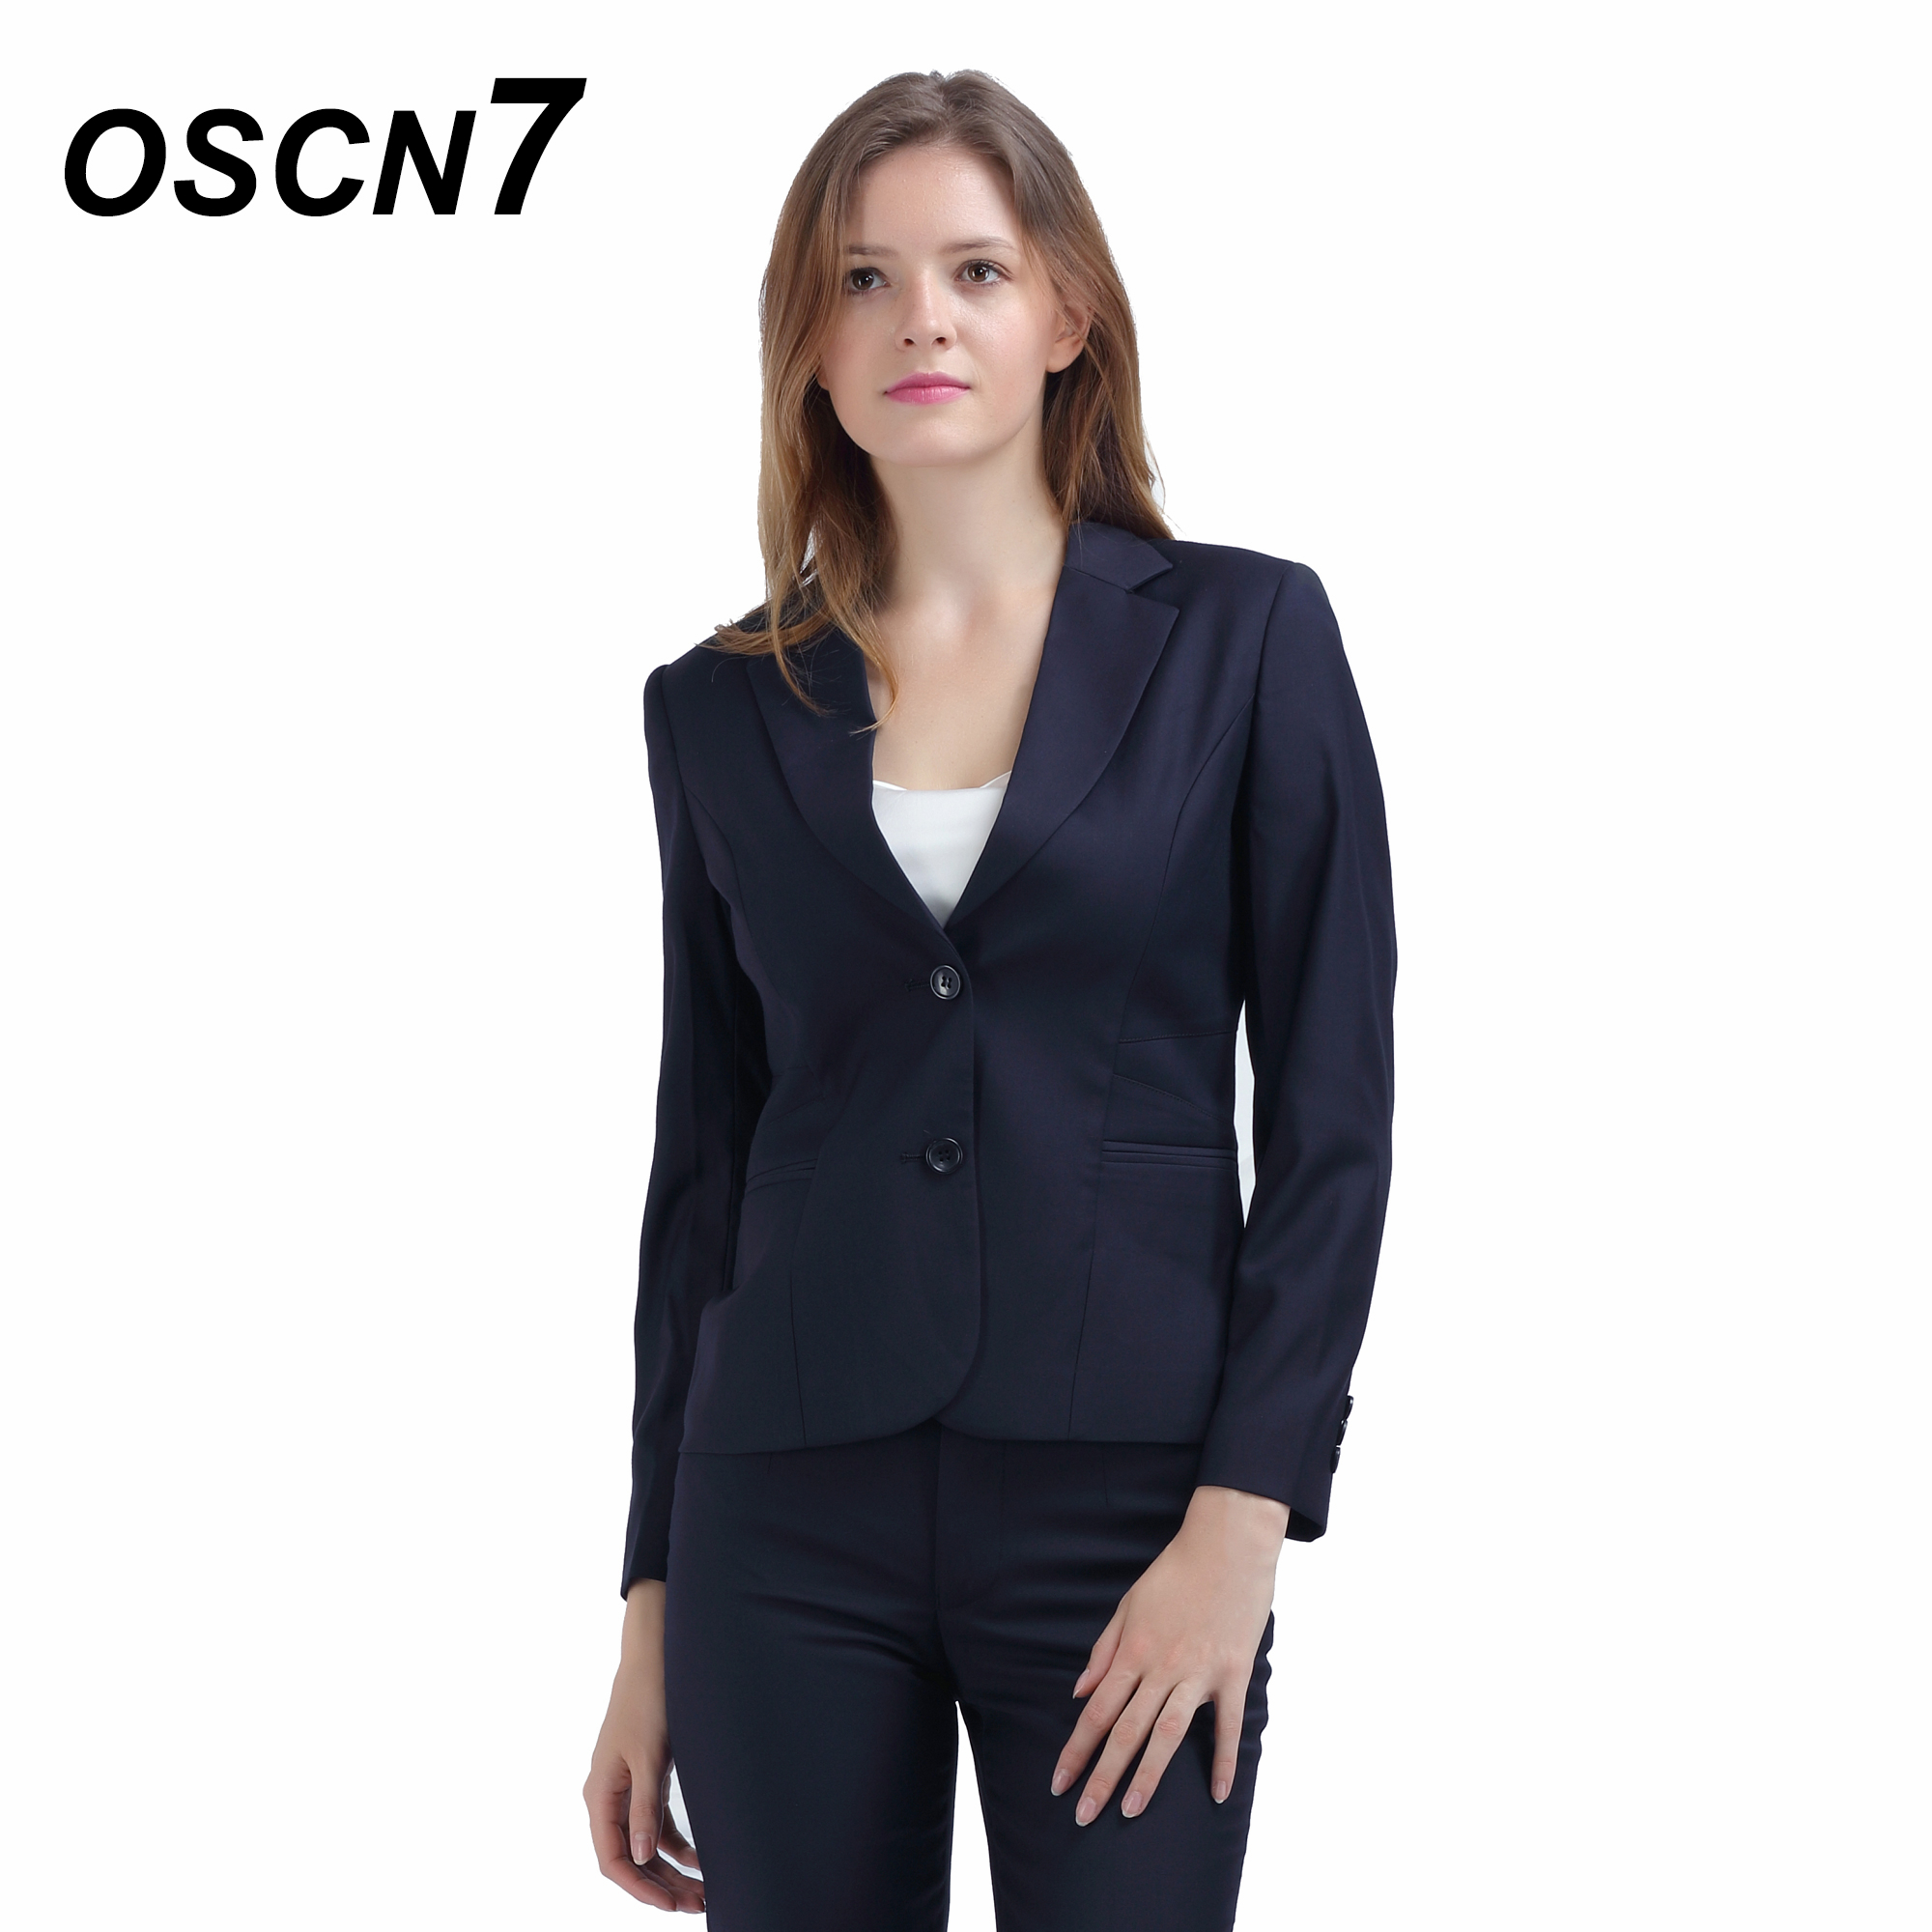 Imported From Abroad Oscn7 Dark Blue Suit Women Solid Color Ol Style Business Tailor Made Ladies Suits Fashion 2018 Office Suits For Women 157